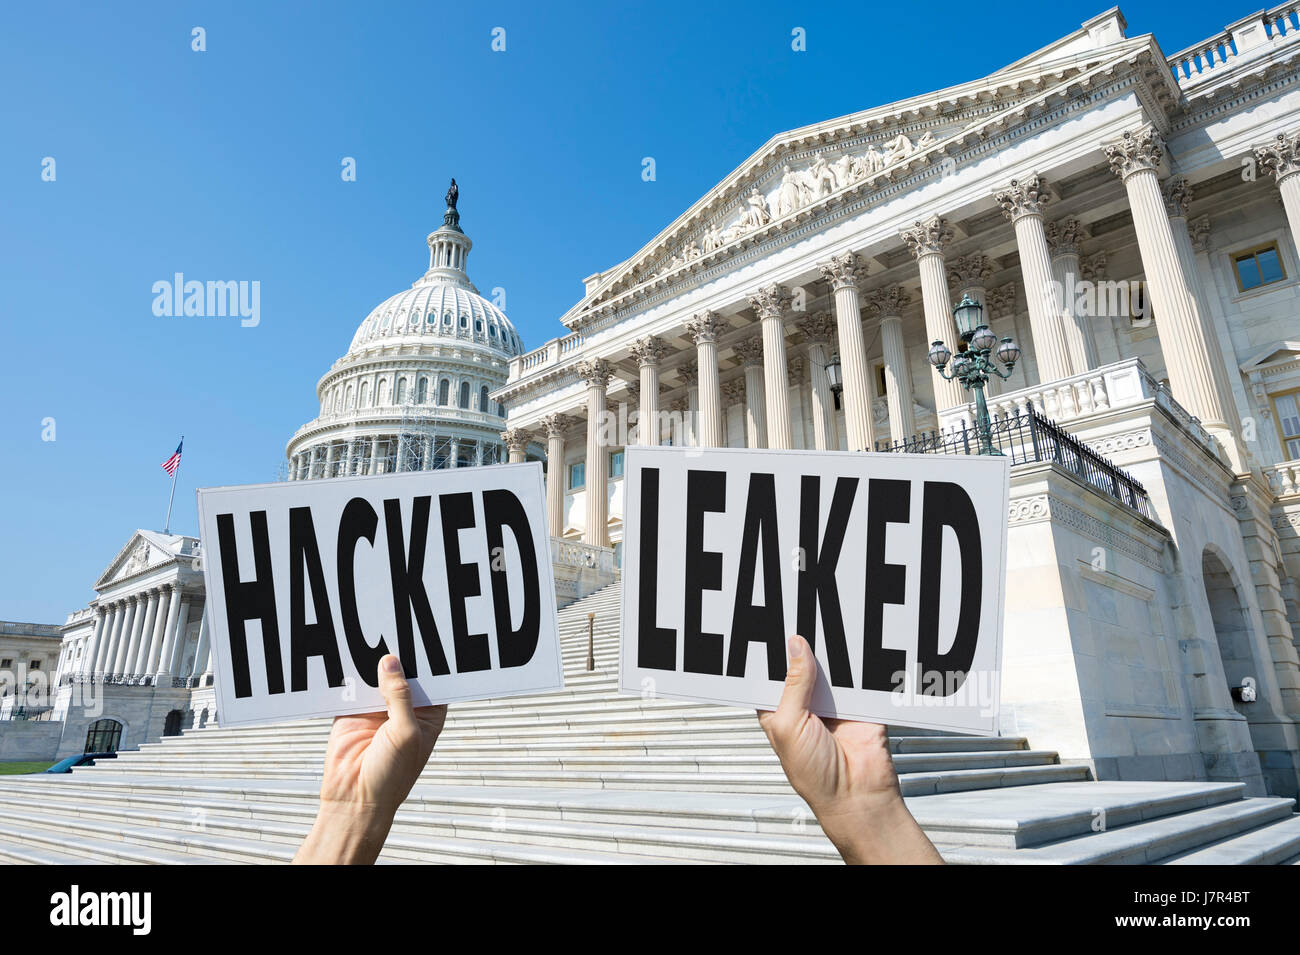 Signs representing issues with modern elections, the hacking of accounts and leaking of information, at the US Capitol - Stock Image